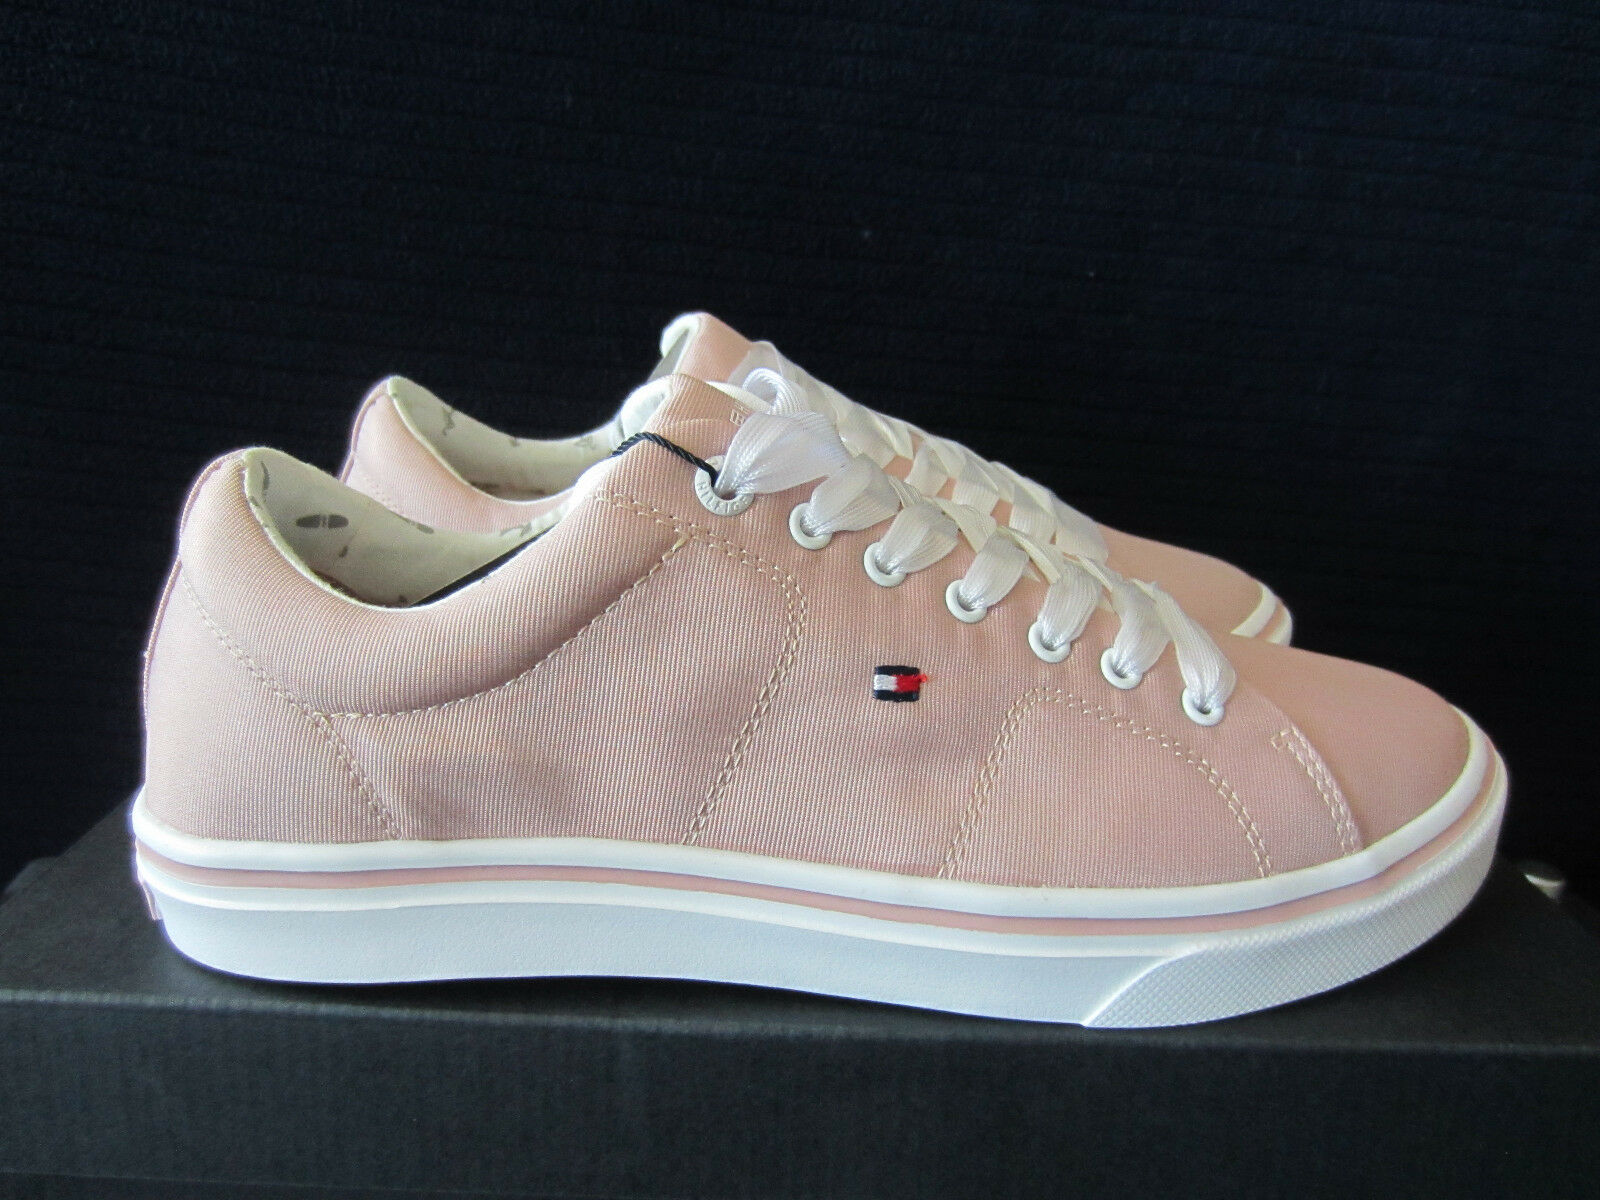 Tommy Hilfiger Metallic Light Weight Lace Up Sneakers 41 Blau, Rosa Gr.39 40 41 Sneakers NEU 593353